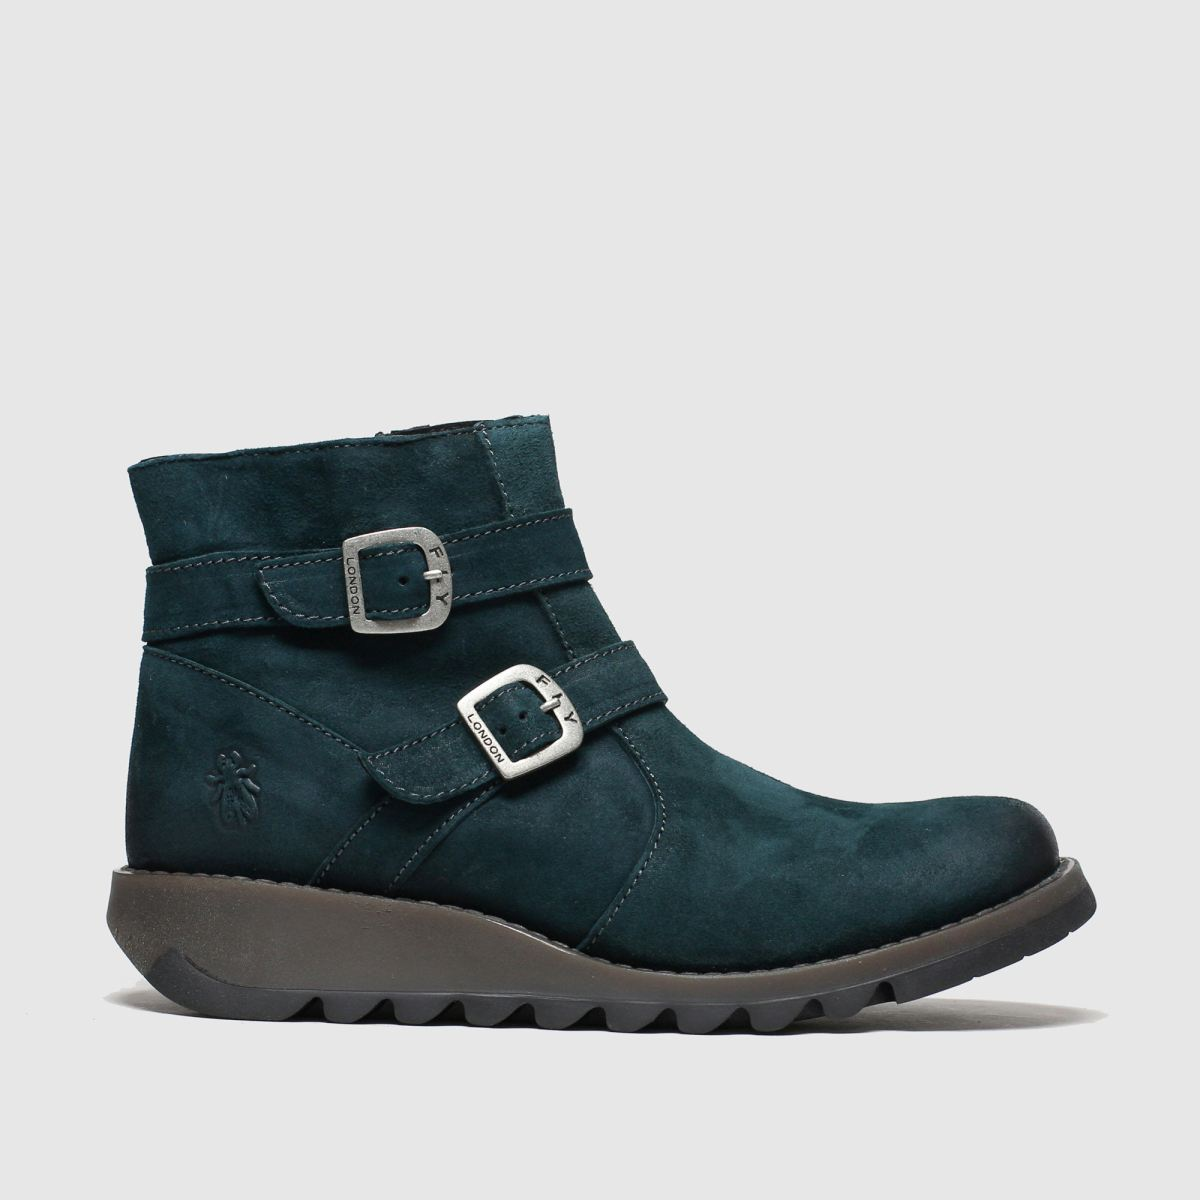 Fly London Fly London Turquoise Serz Boots